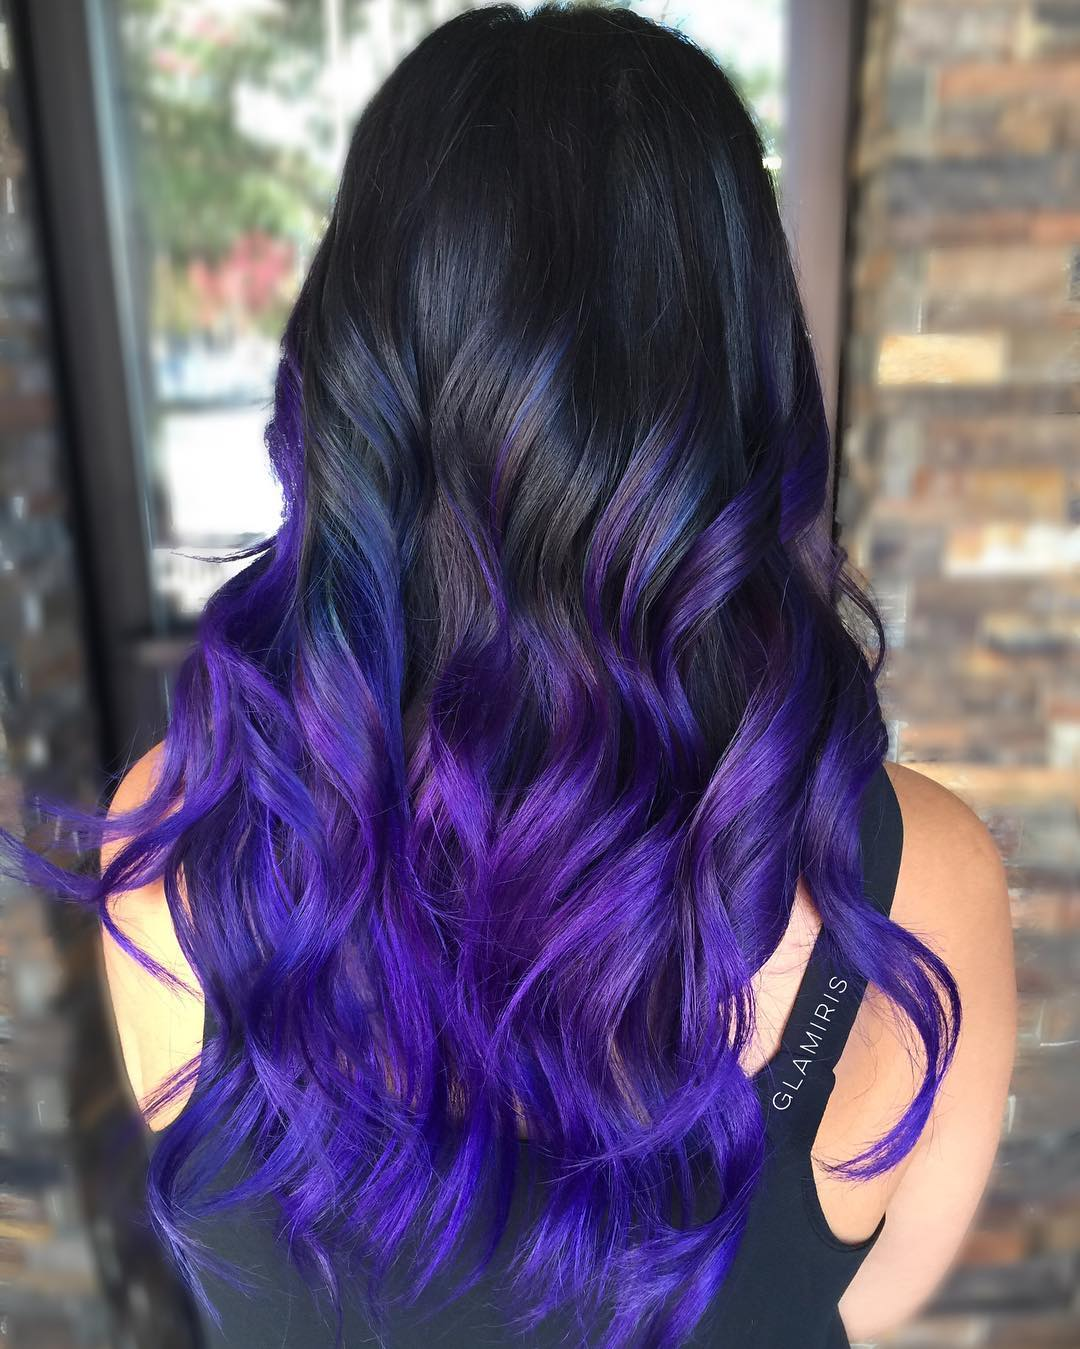 24 Best Summer Hair Colors For 2020